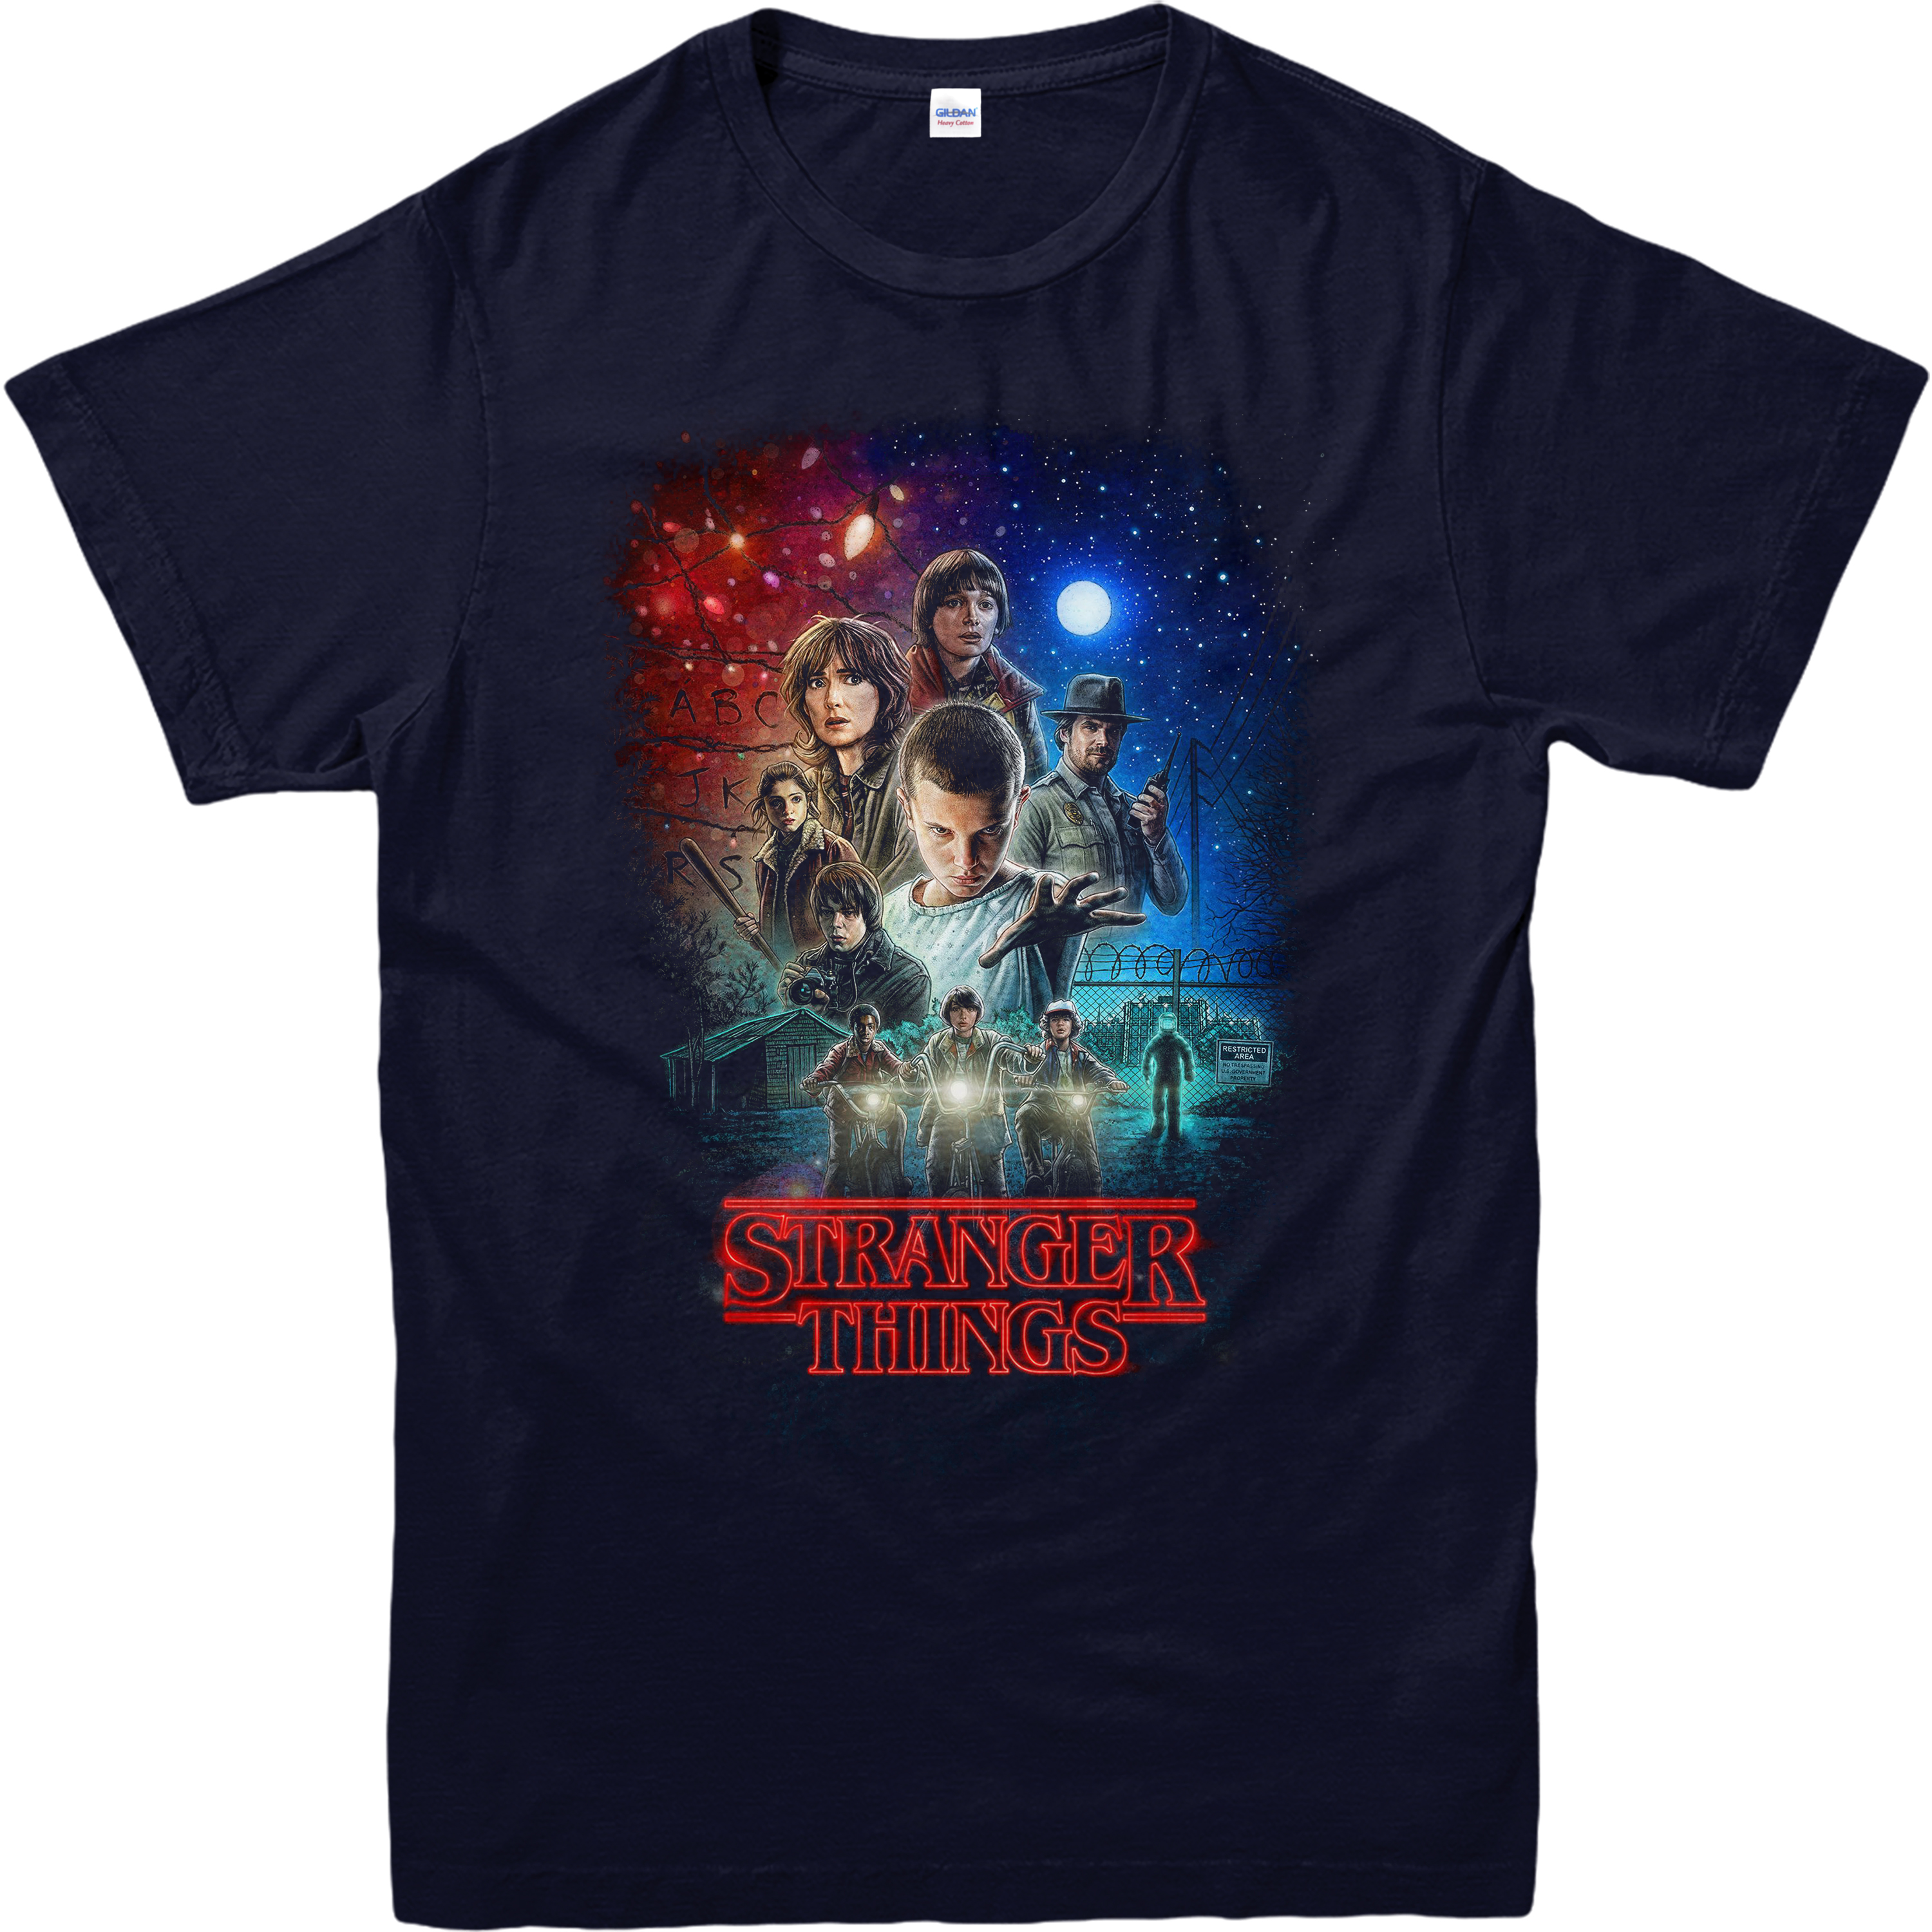 Stranger Things T Shirt Characters Poster T Shirt